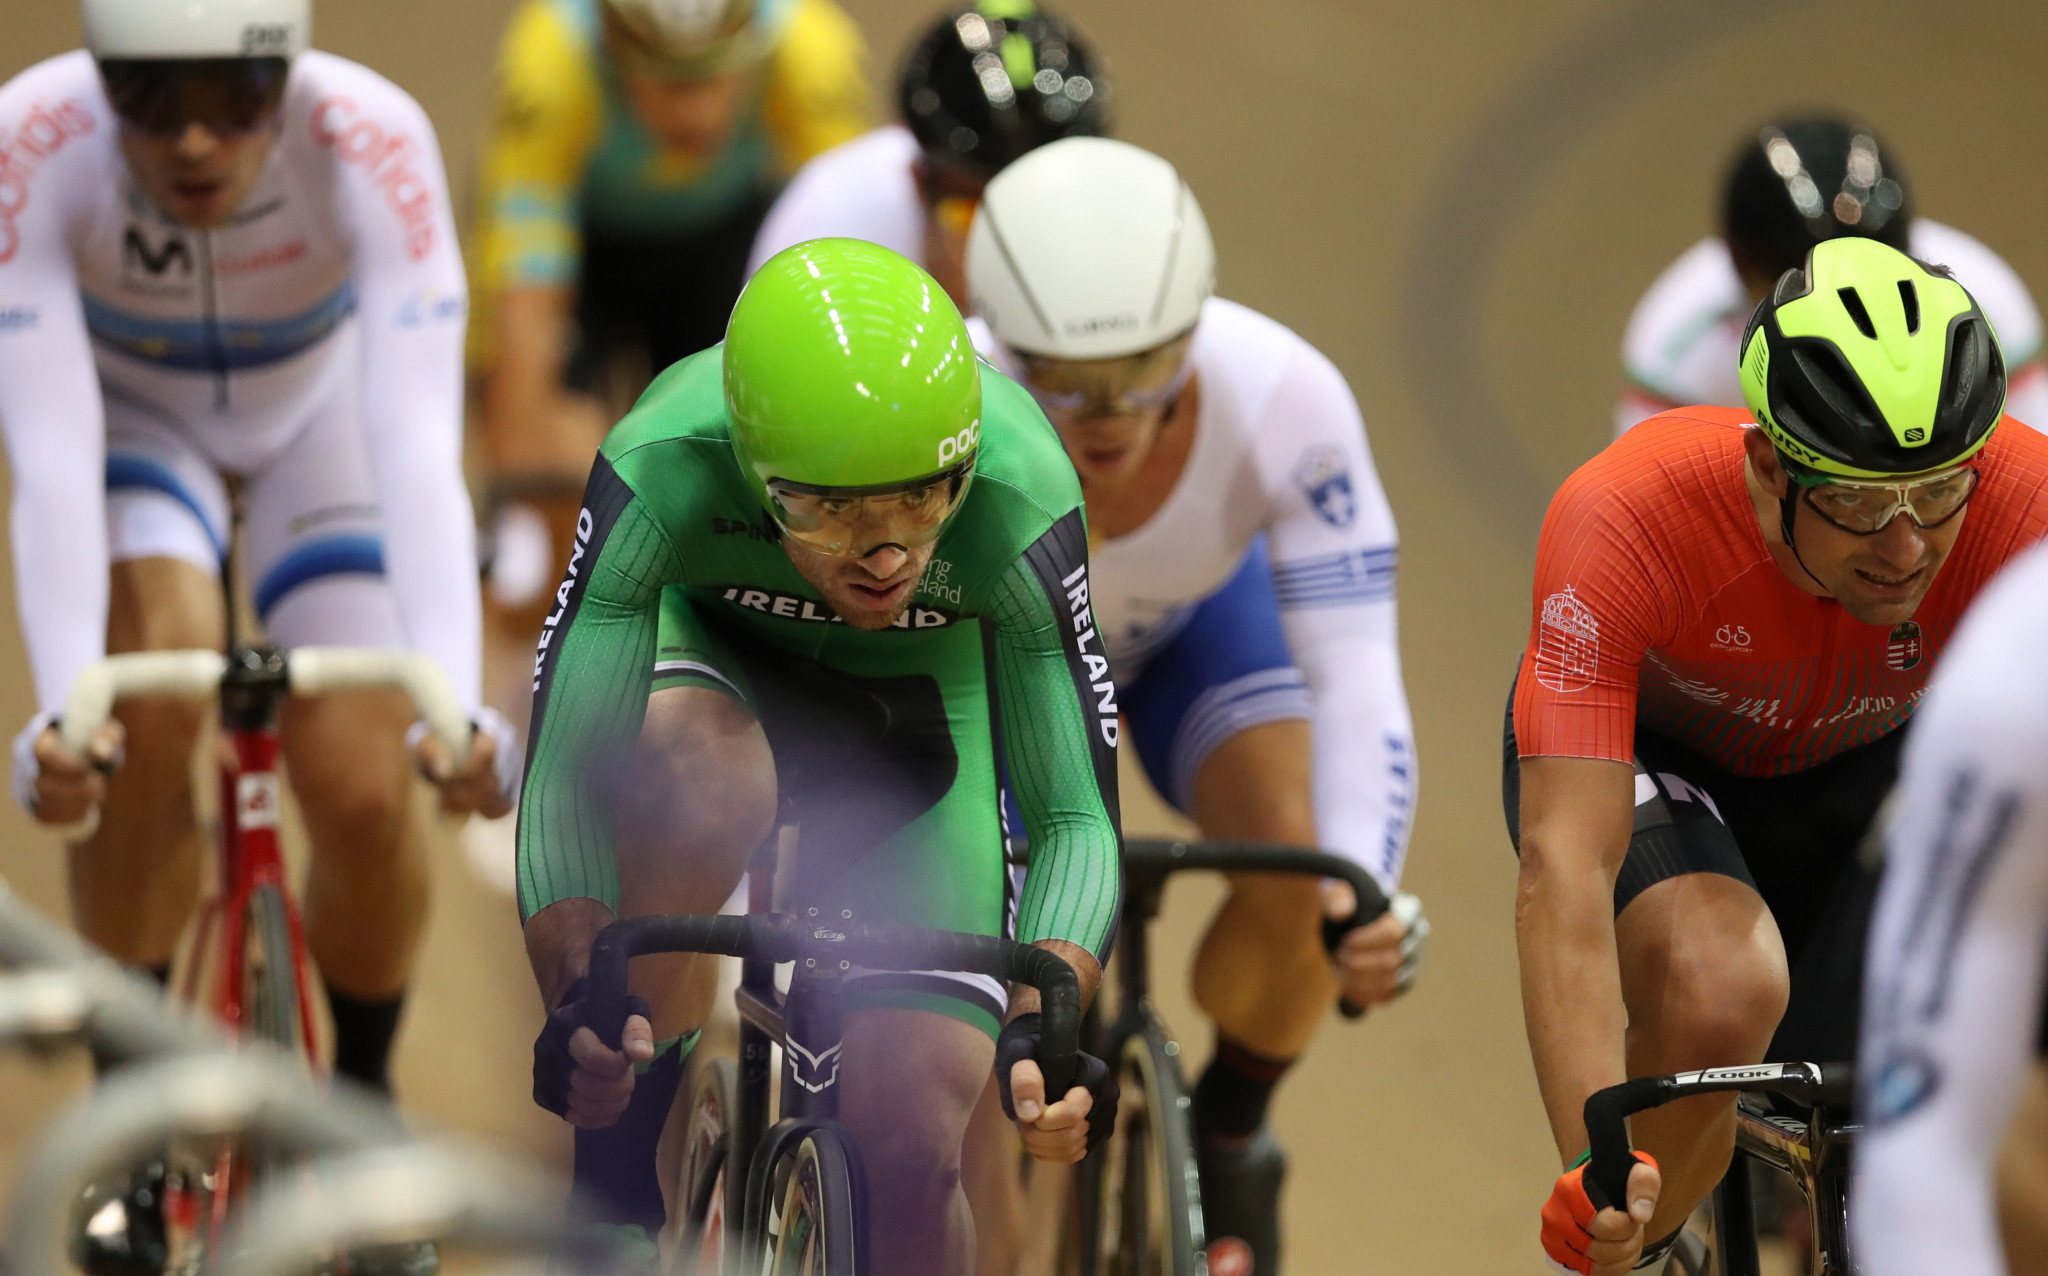 Irish athletes will be able to register their personal sponsors online from February 28 ©Getty Images